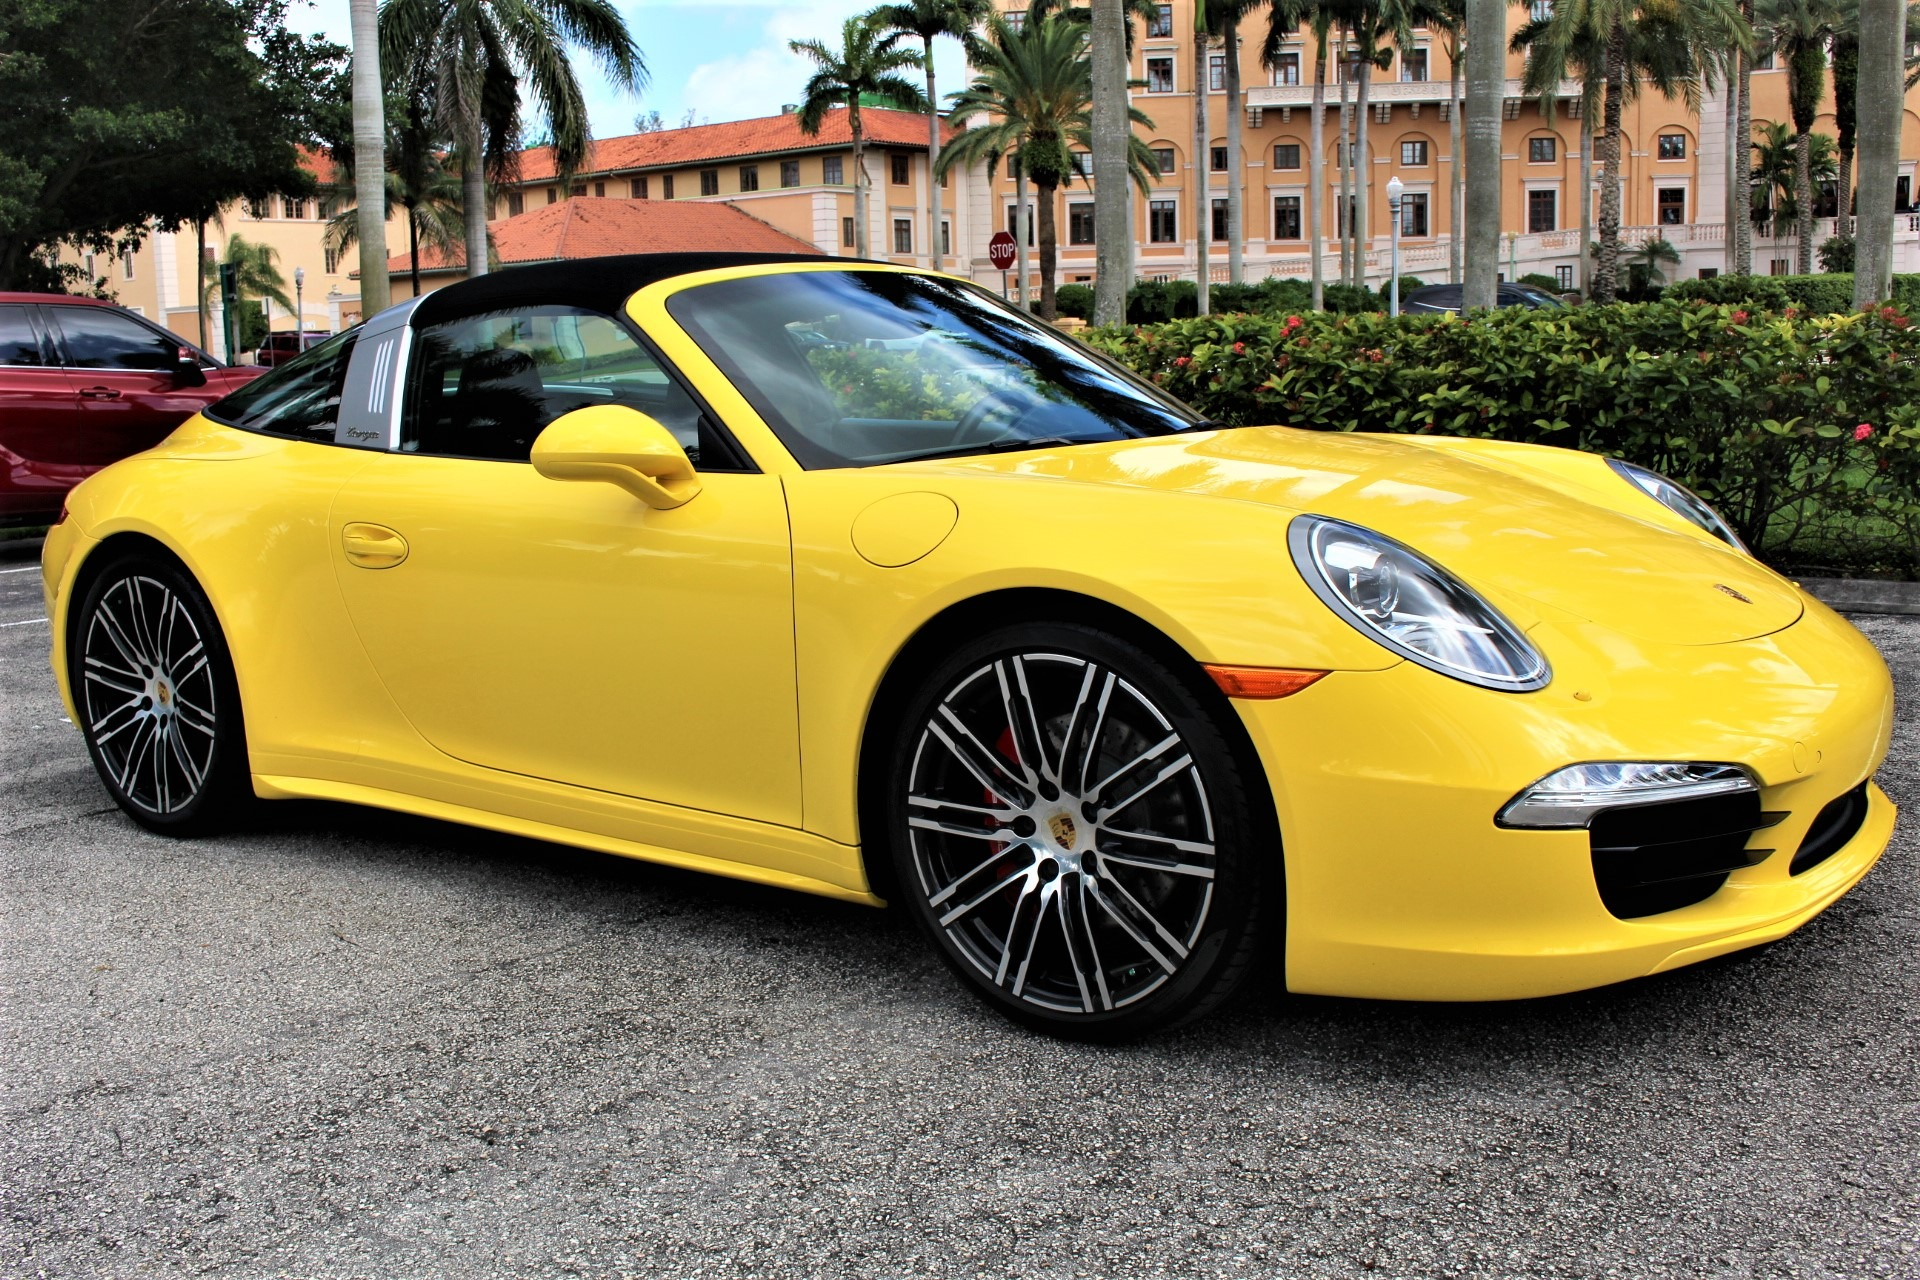 Used 2015 Porsche 911 Targa 4S Exclusive Edition for sale $122,850 at The Gables Sports Cars in Miami FL 33146 3